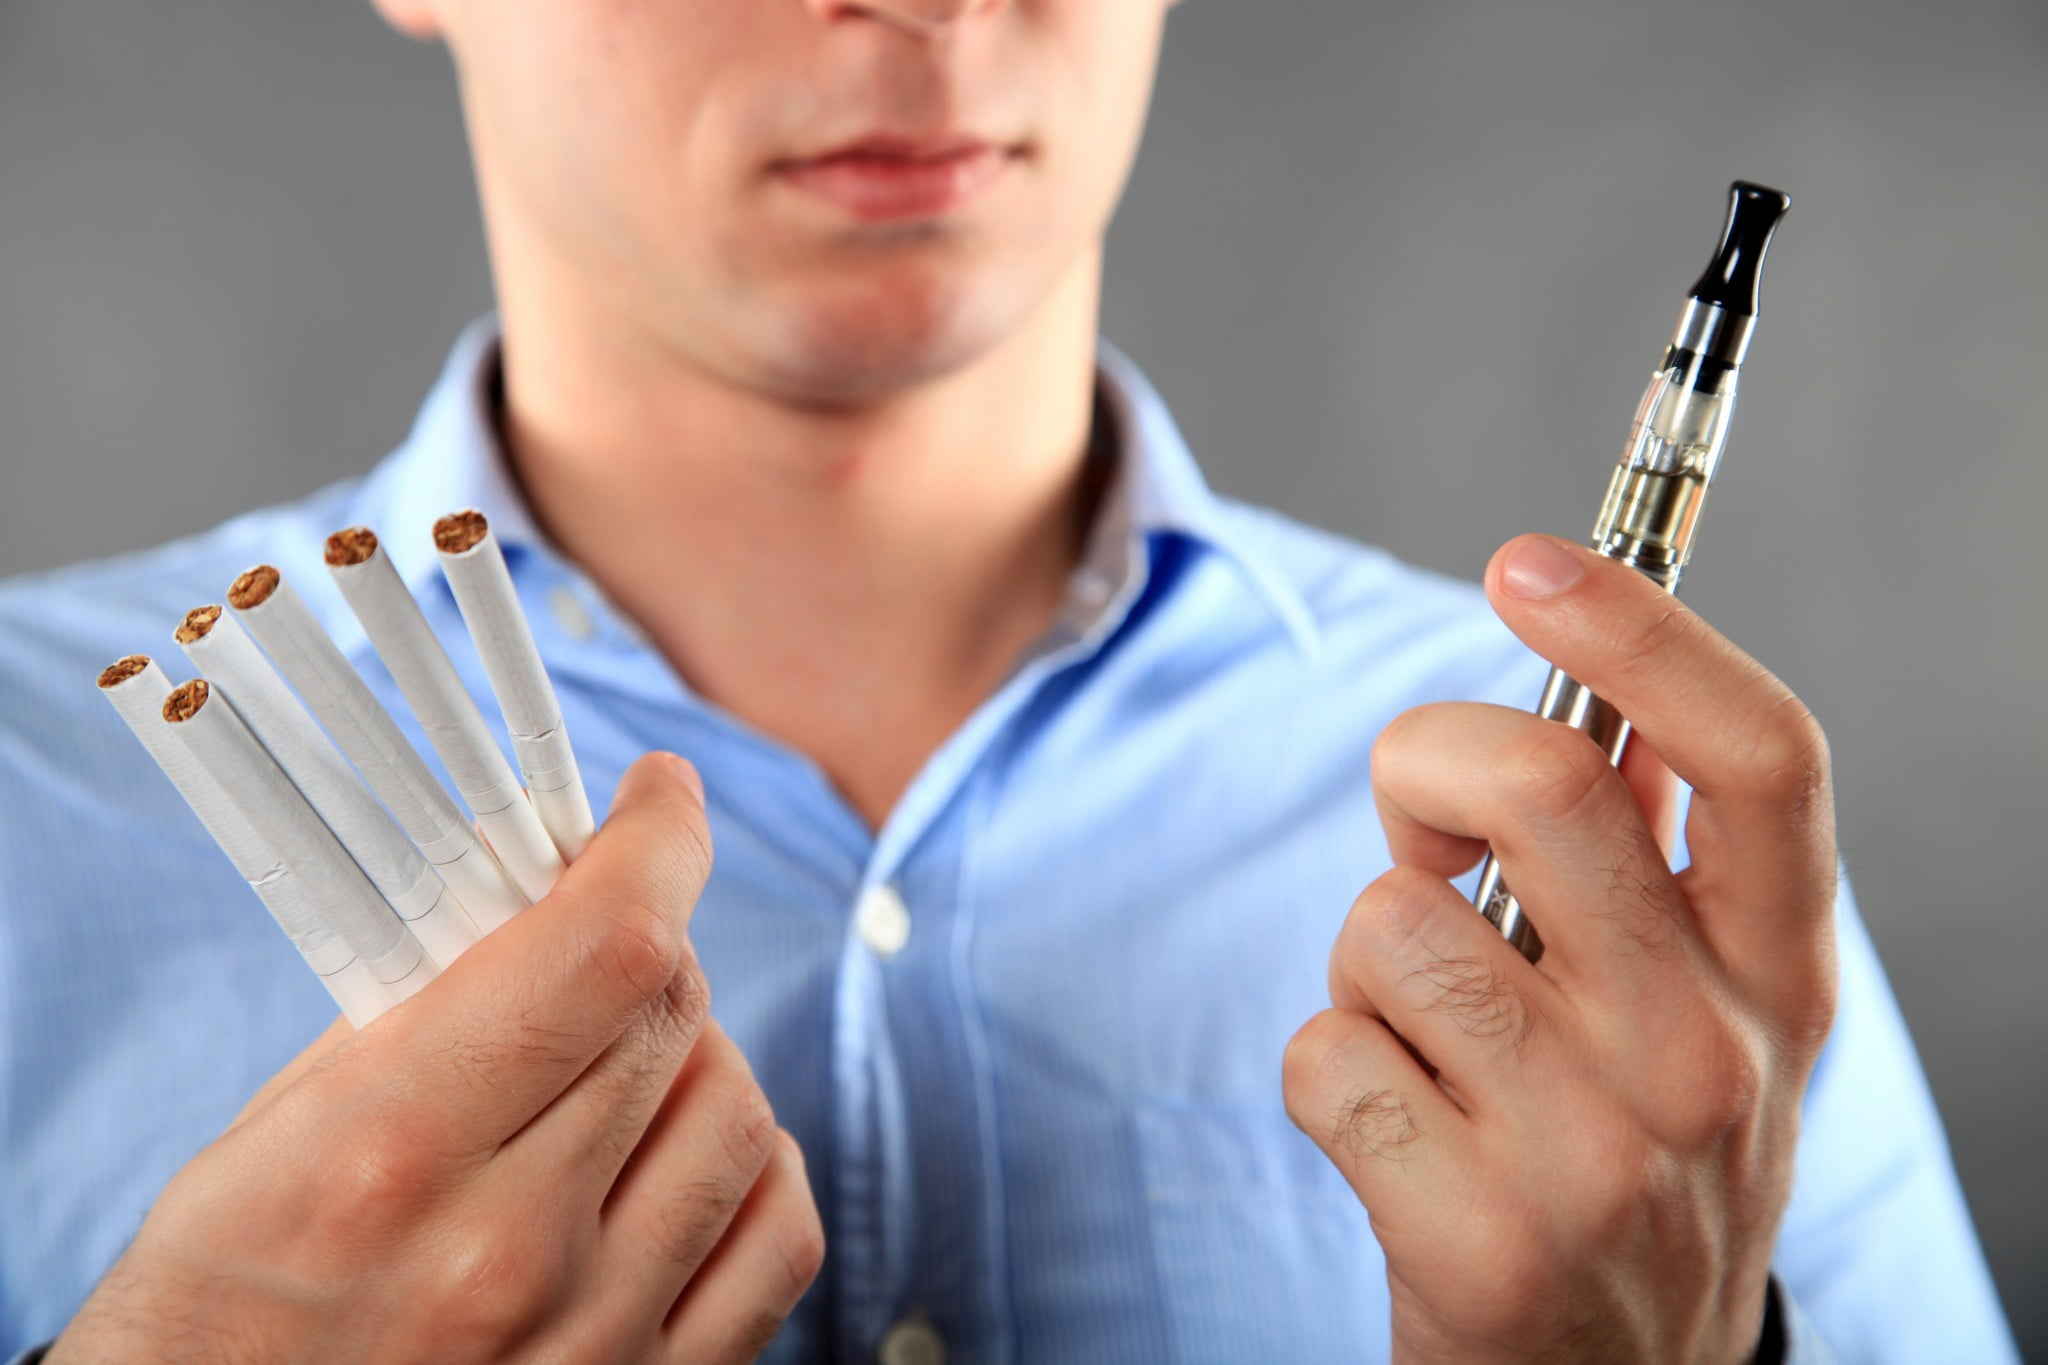 man with e-cigarette in one hand and six cigarettes in the other